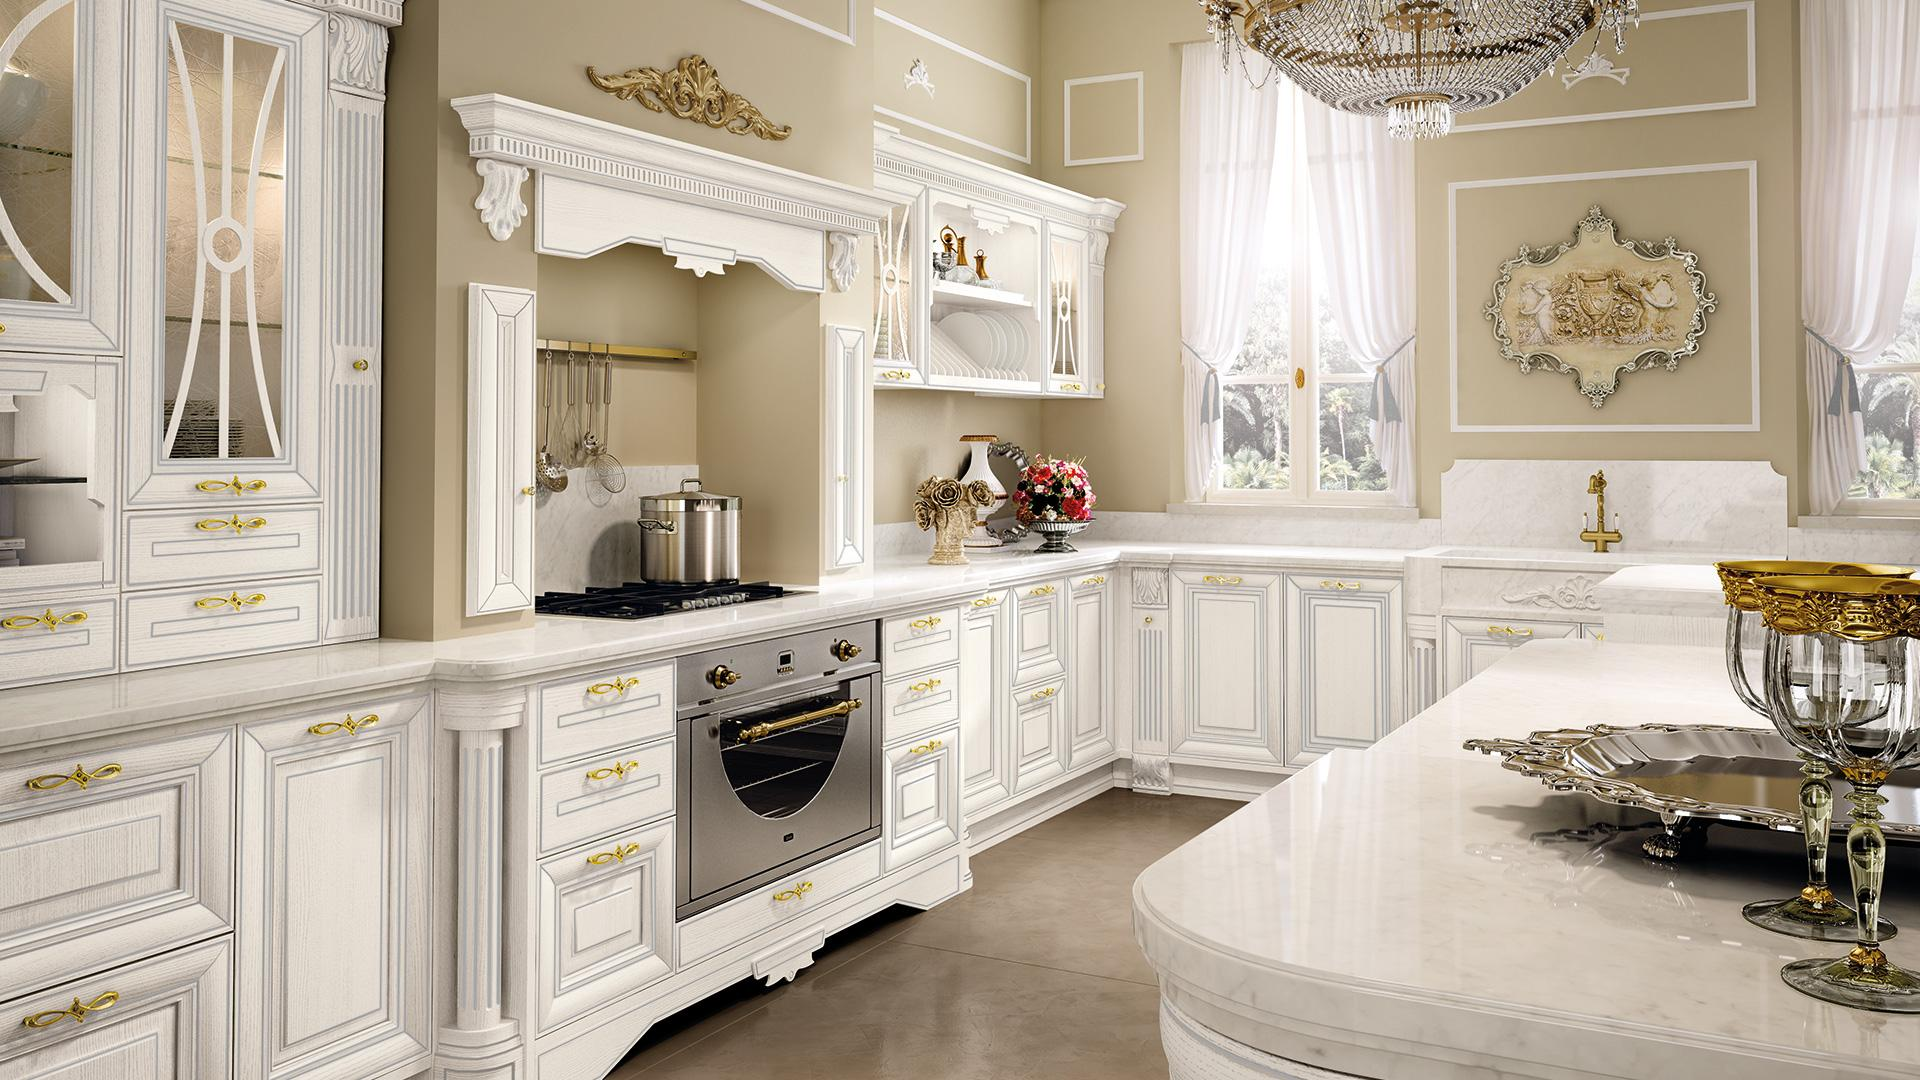 Cucine design kitchens lube official website